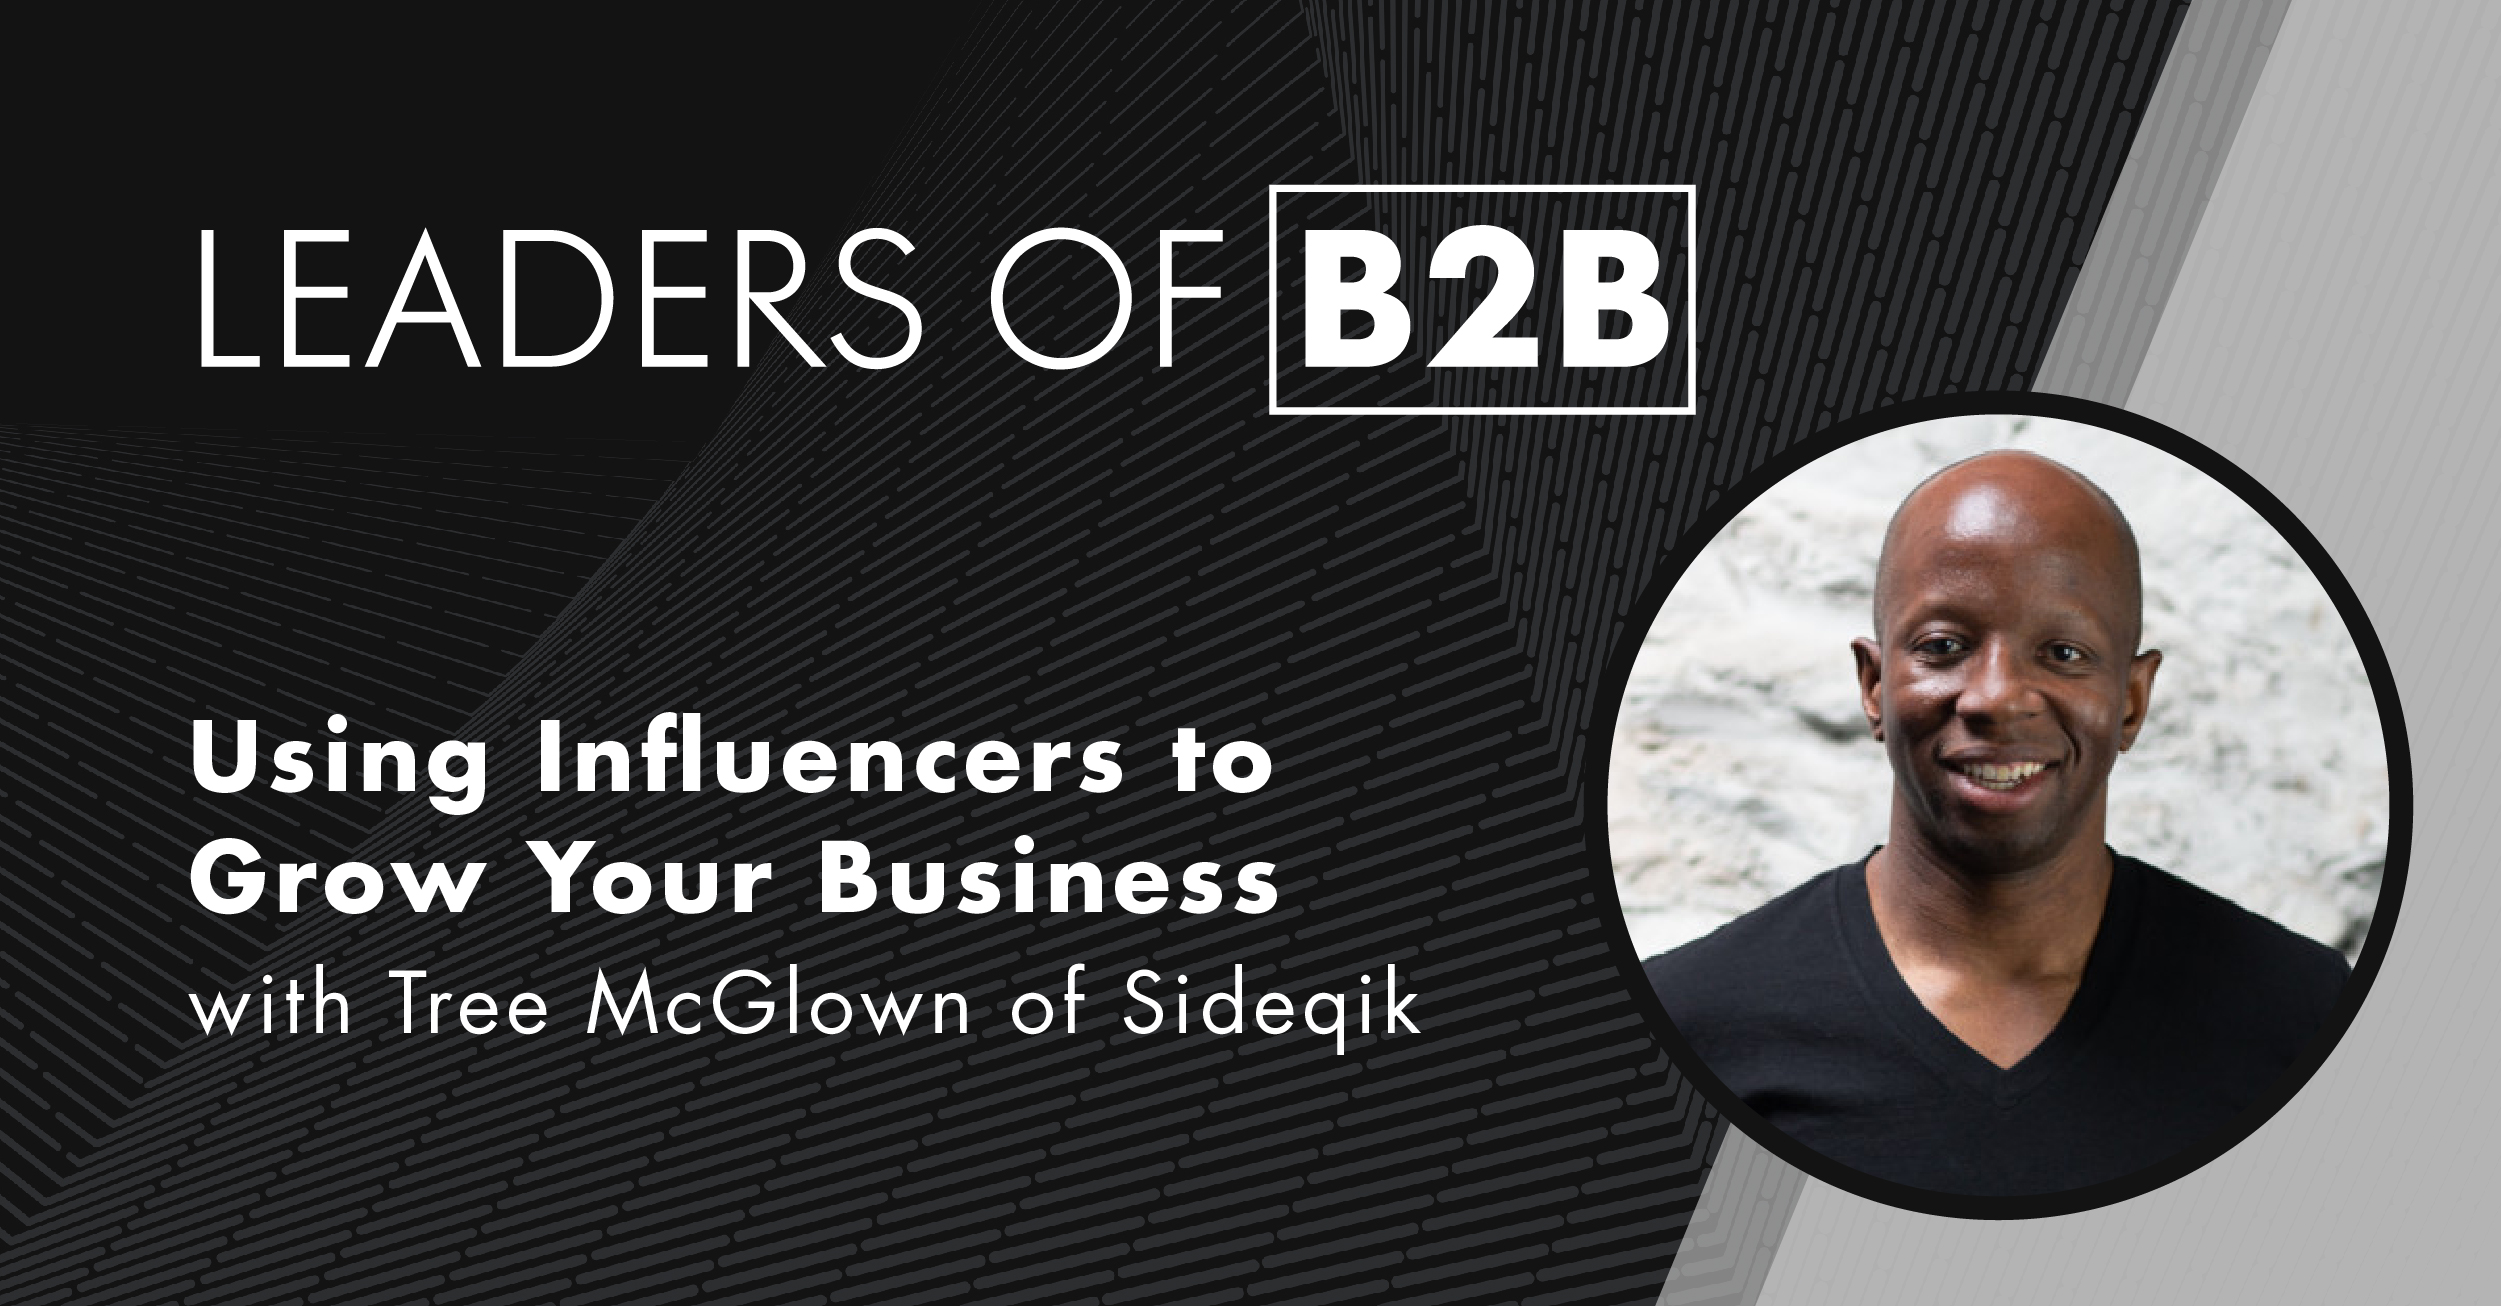 Leaders of B2B Episode 38: Using Influencers to Grow Your Business with Tree McGlown of Sideqik